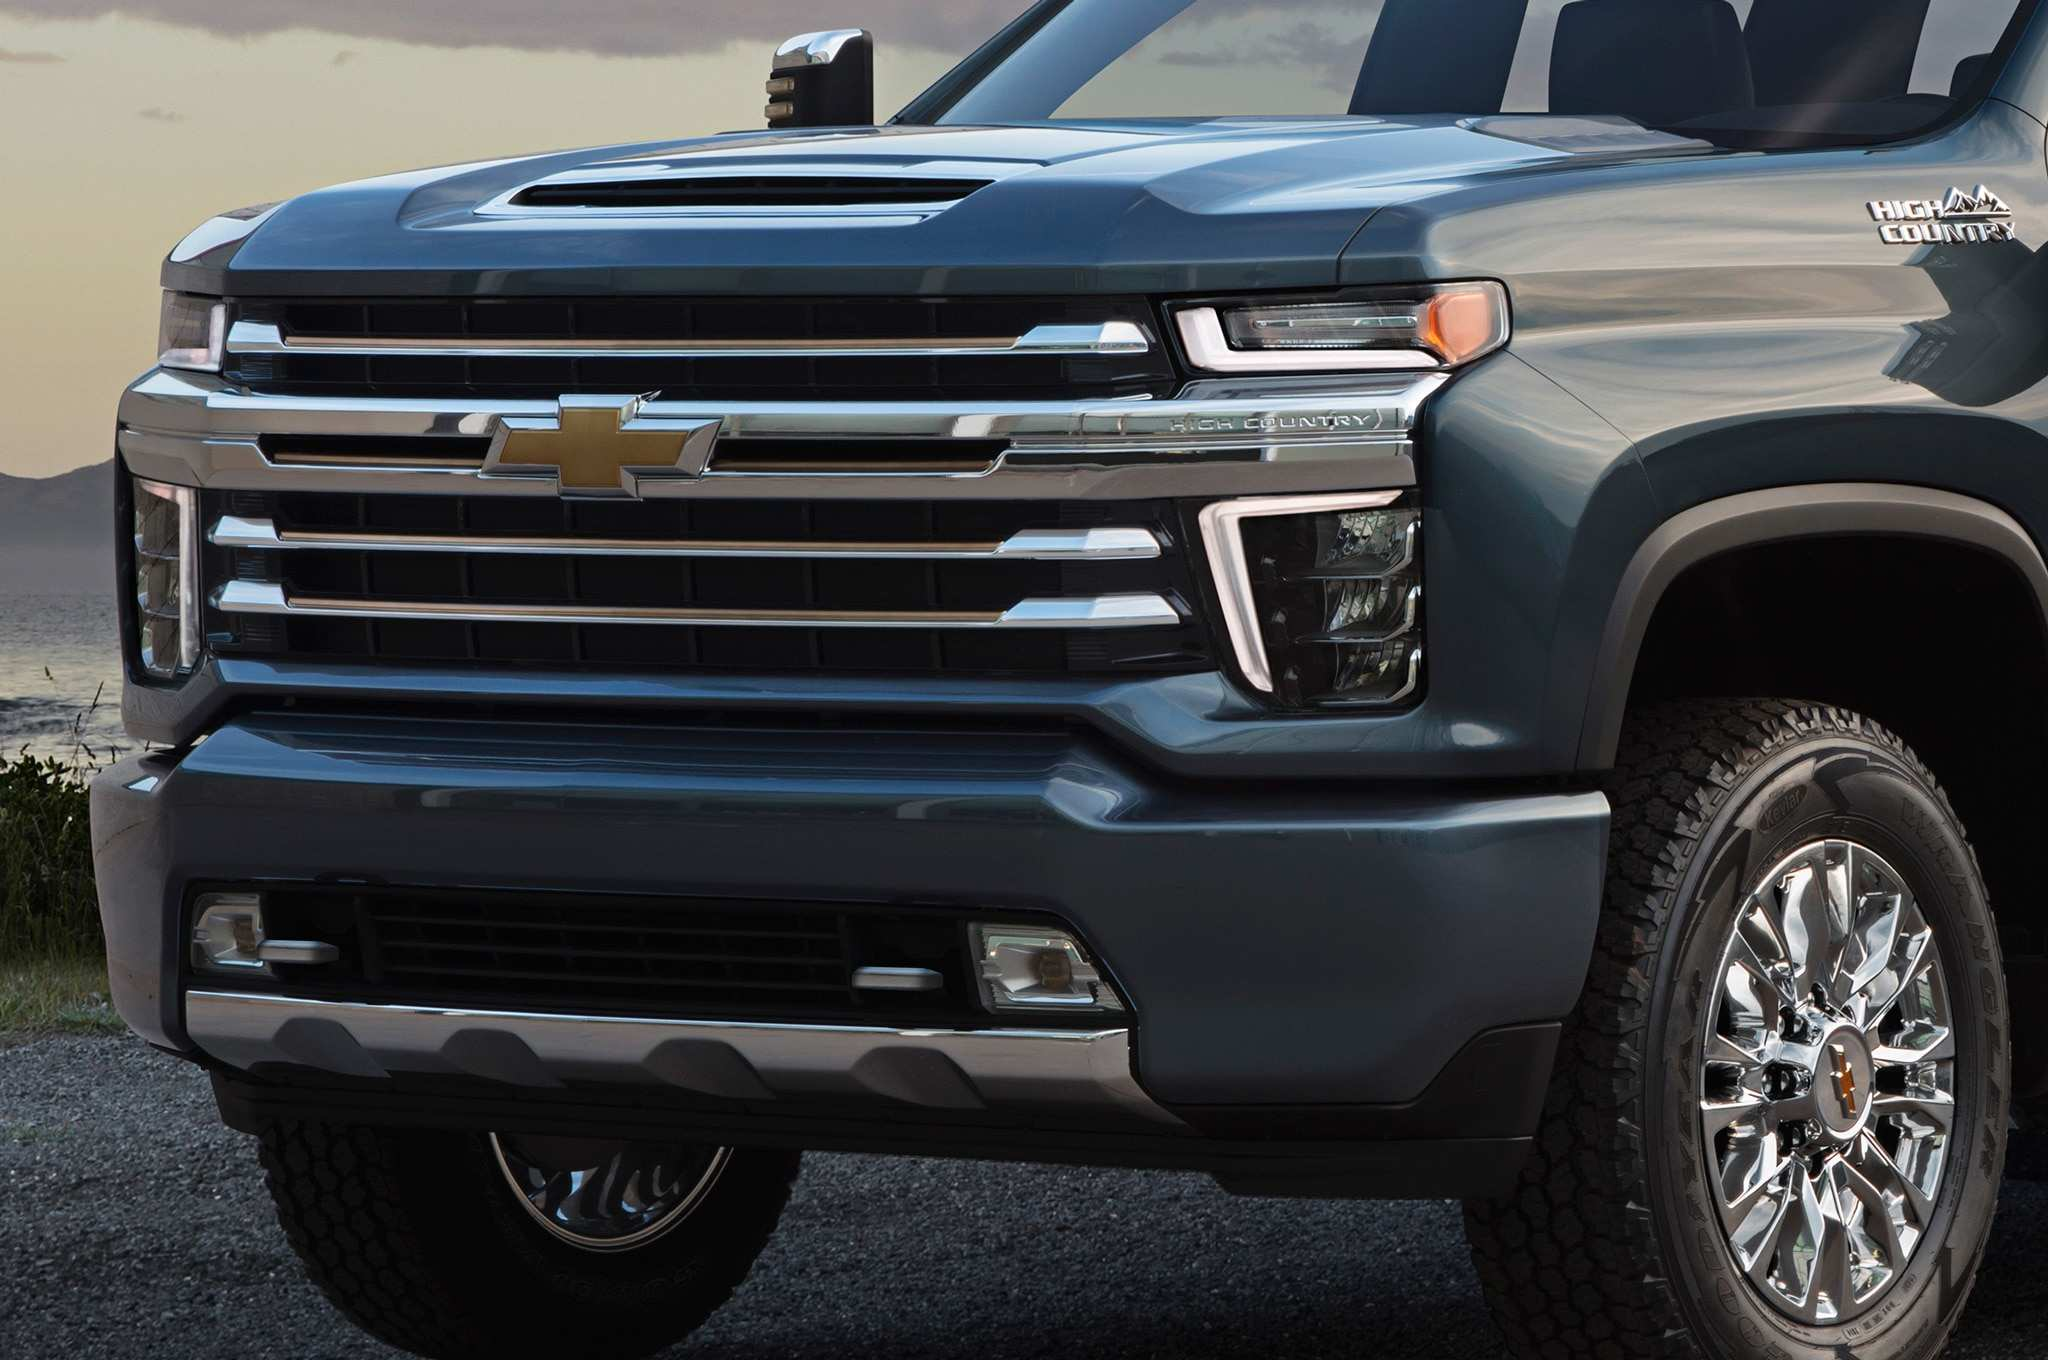 81 The Best 2020 Chevrolet Silverado 2500Hd High Country Exterior And Interior